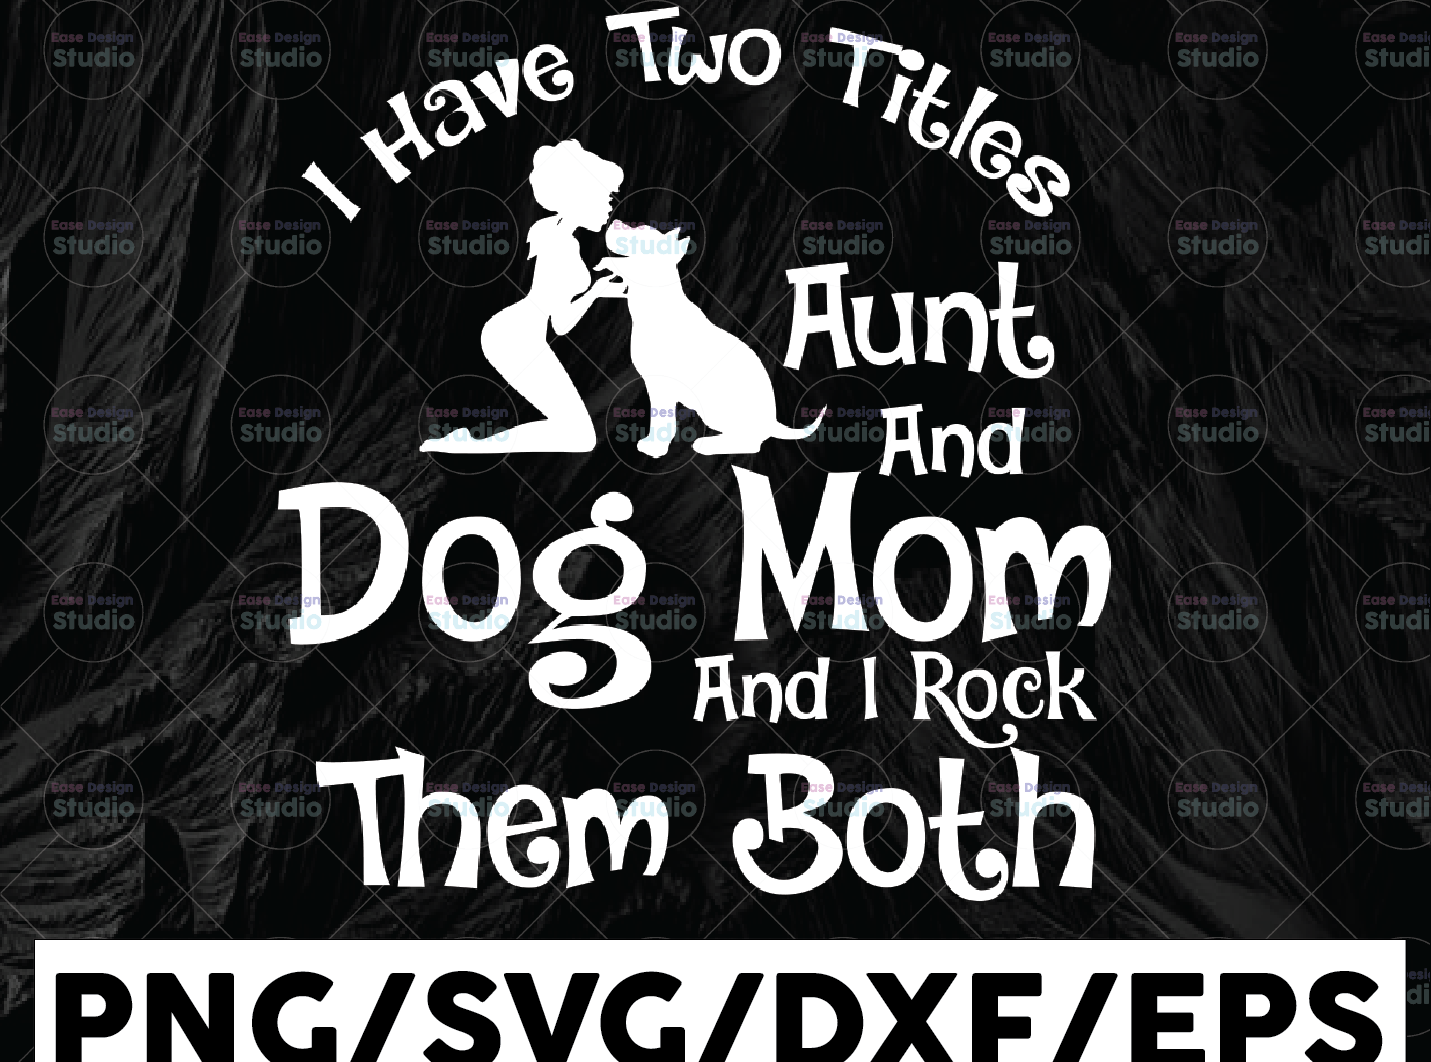 Aunt & Dog Mom svg, I Have Two Titles - Aunt and Dog Mom and I Rock Them - WTMETSY13012021 01 202 -